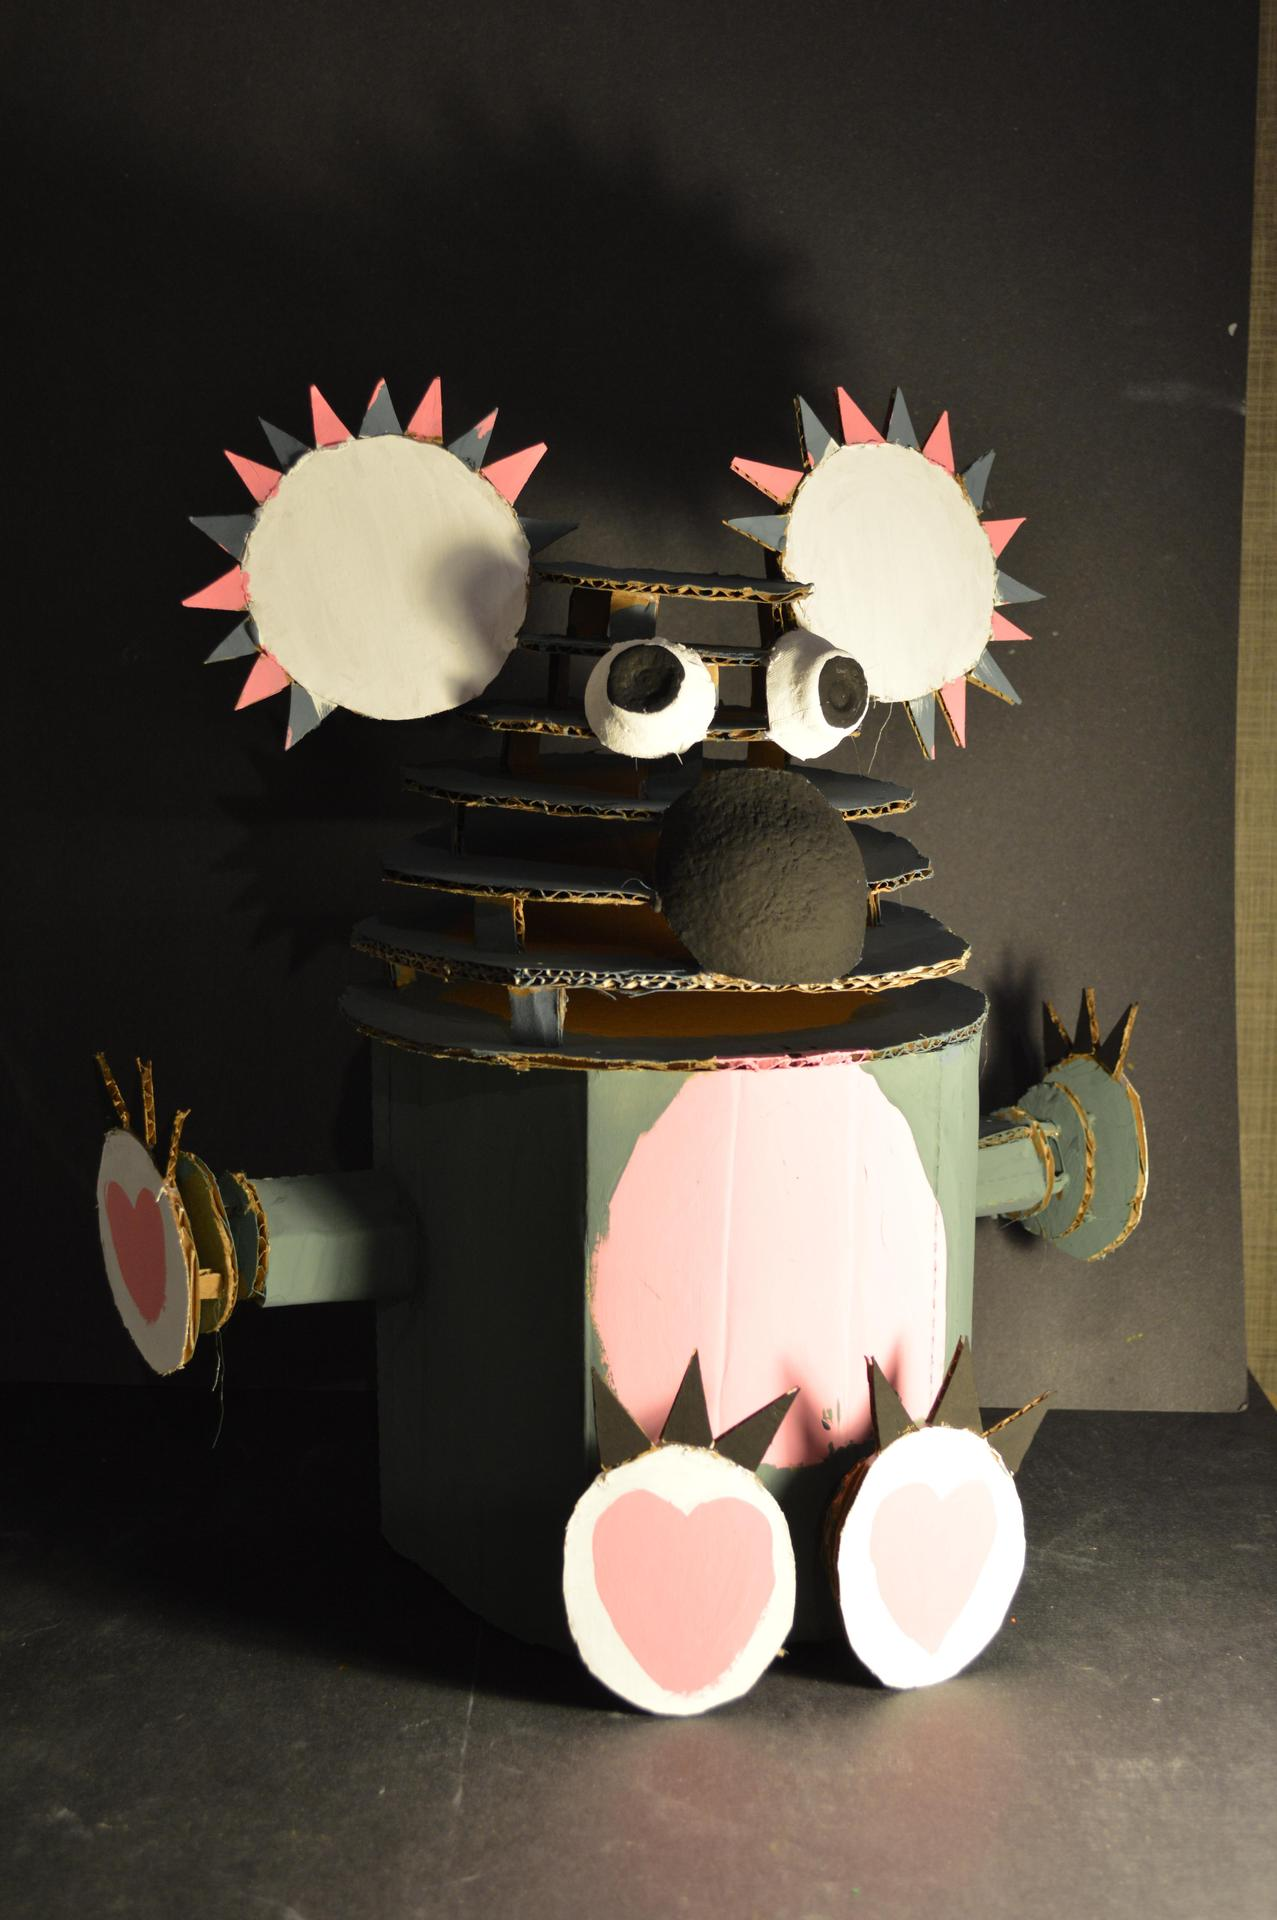 Cardboard Sculpture by Lily Bare